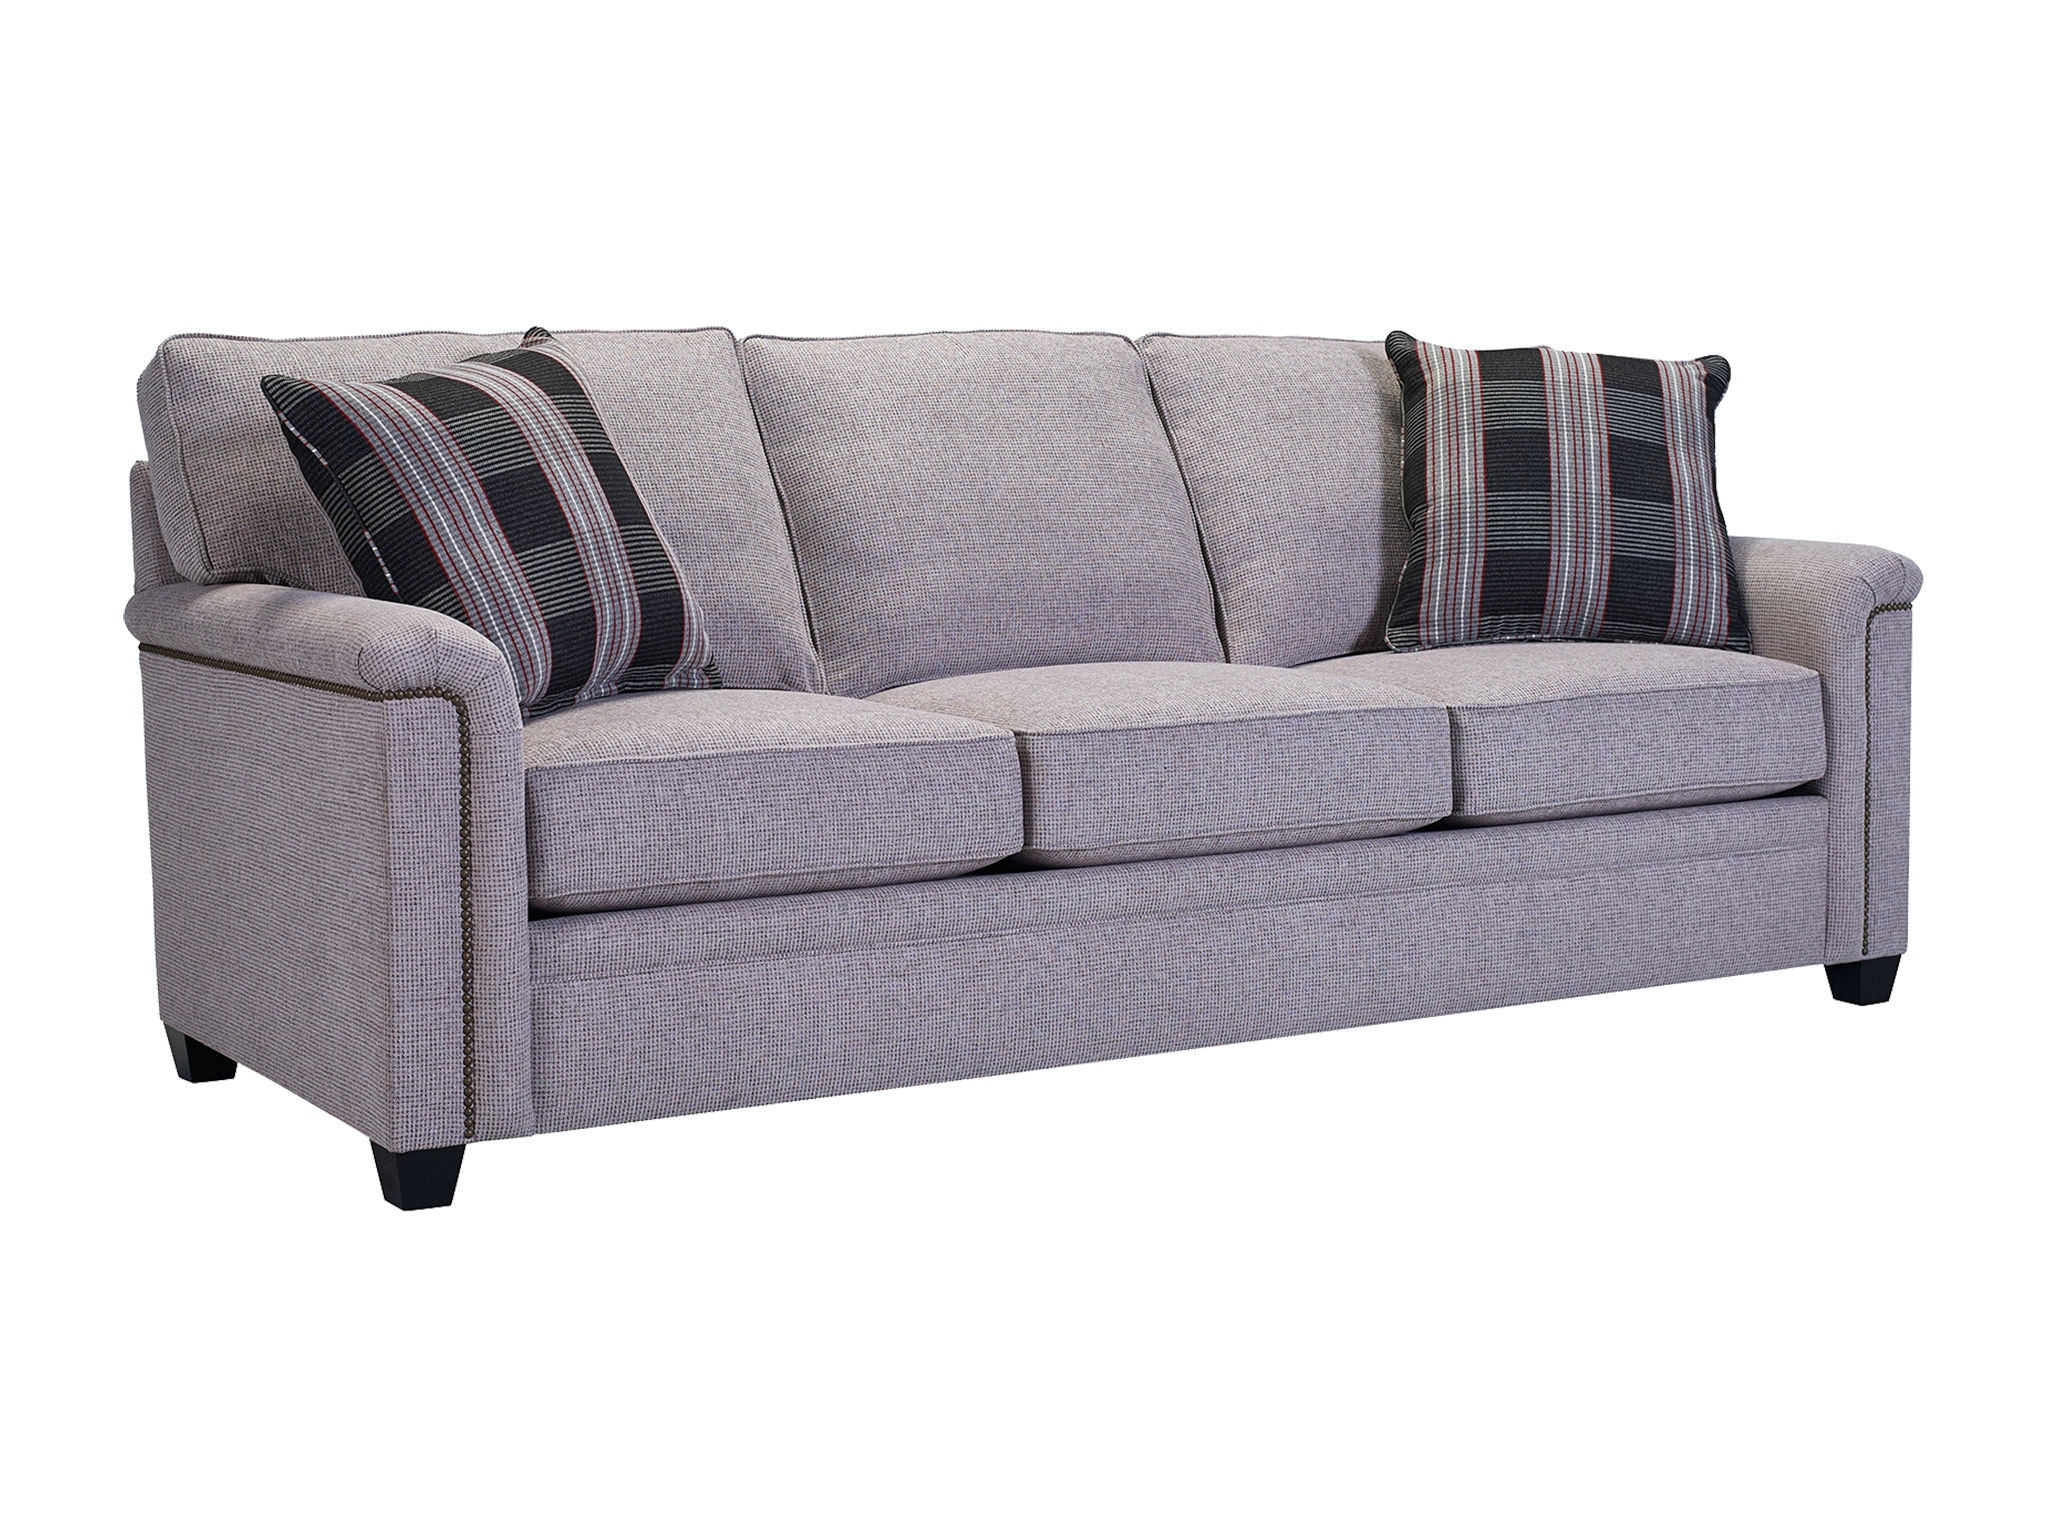 Sofa Express Locations Broyhill Living Room Warren Sofa 4287 3 Lynch Furniture